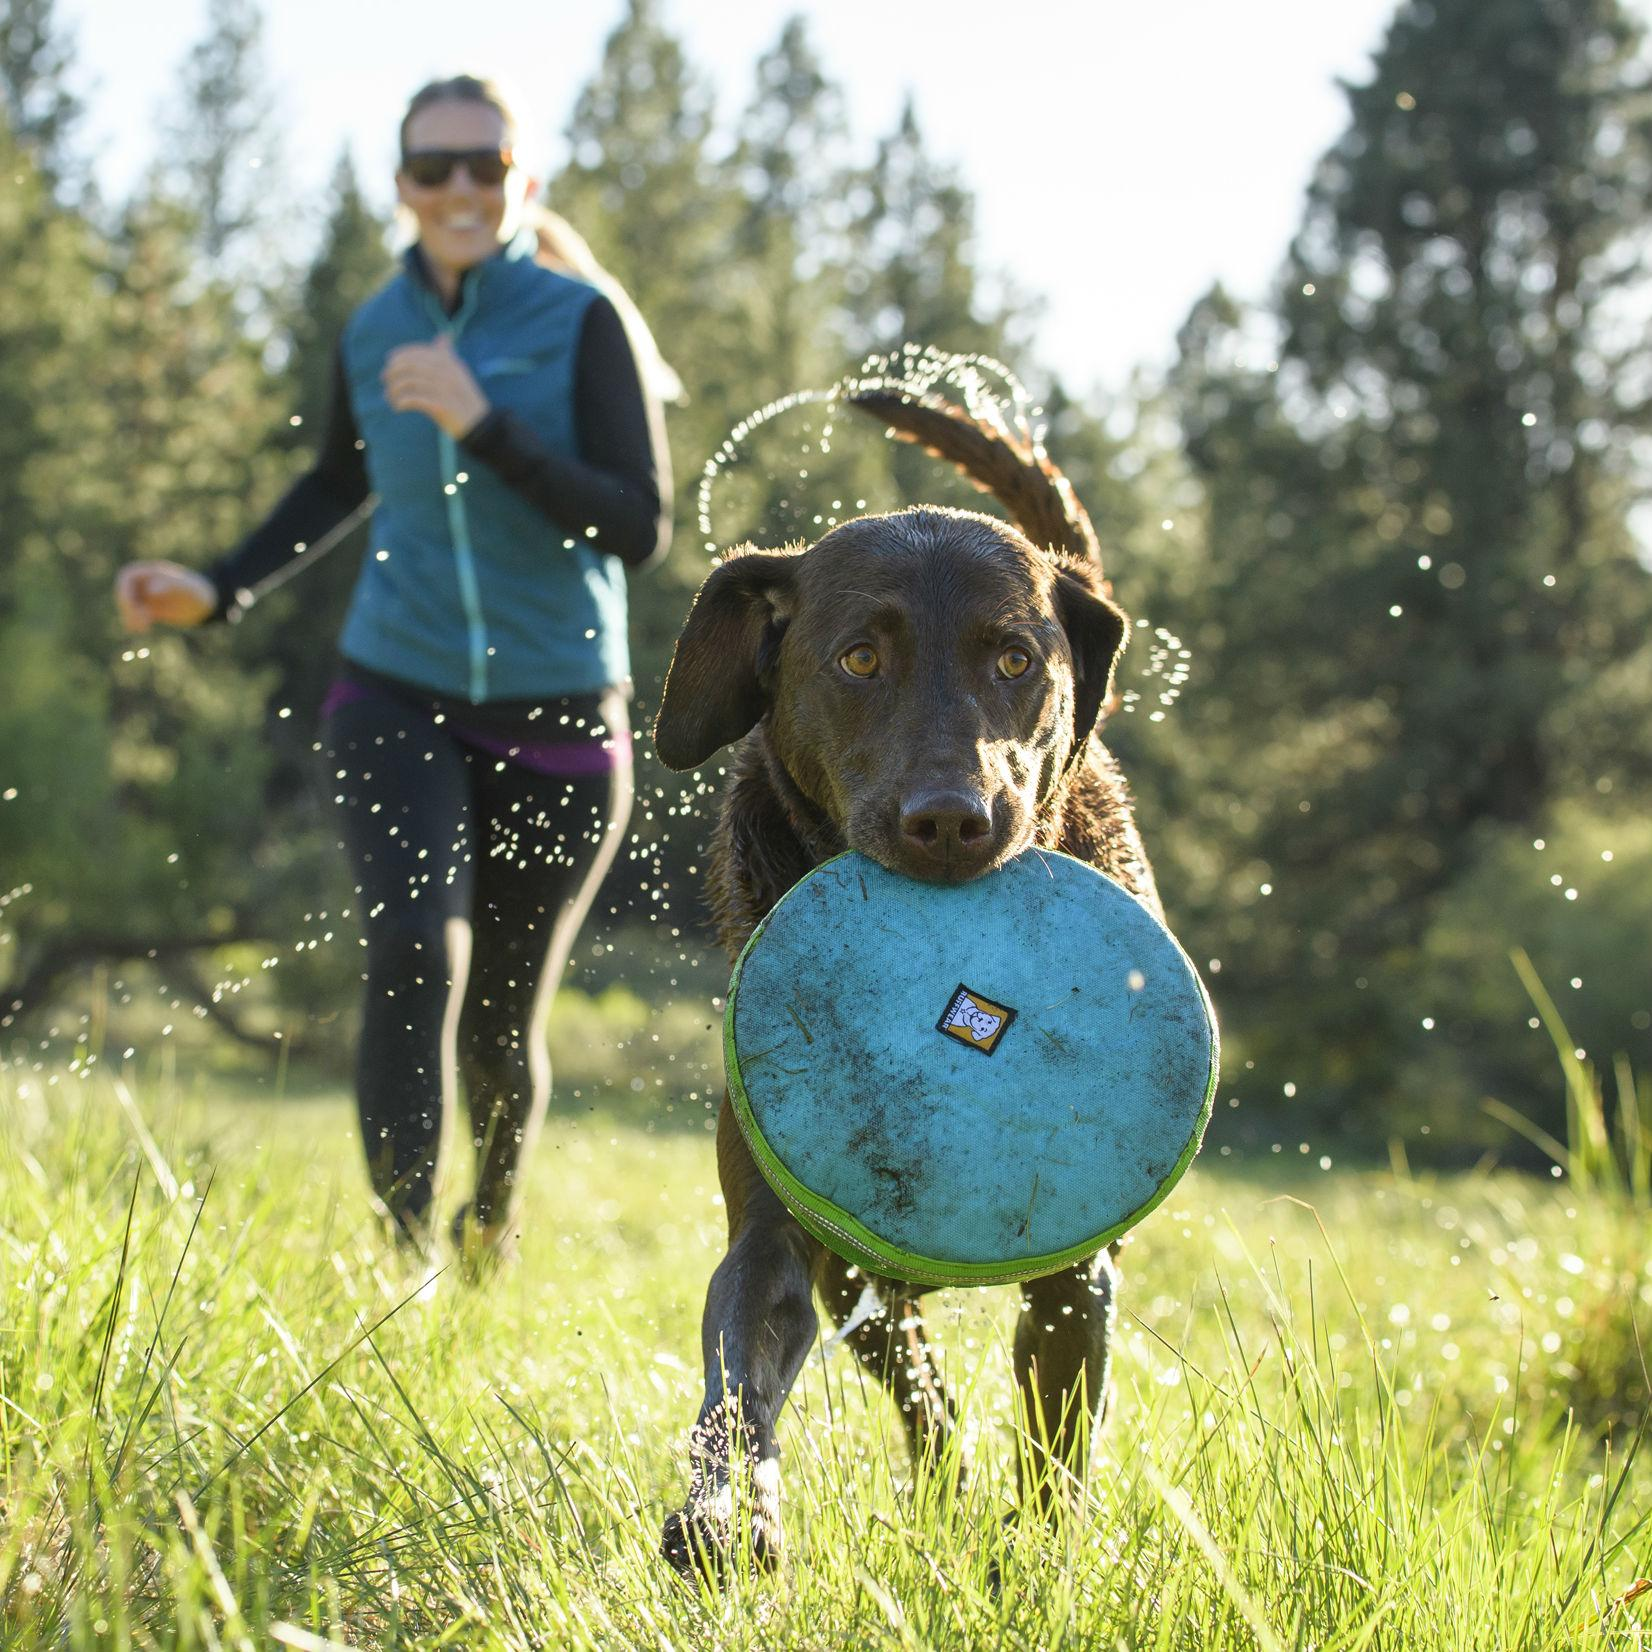 Hover Craft Disk Dog Toy by Ruffwear - Blue Atoll